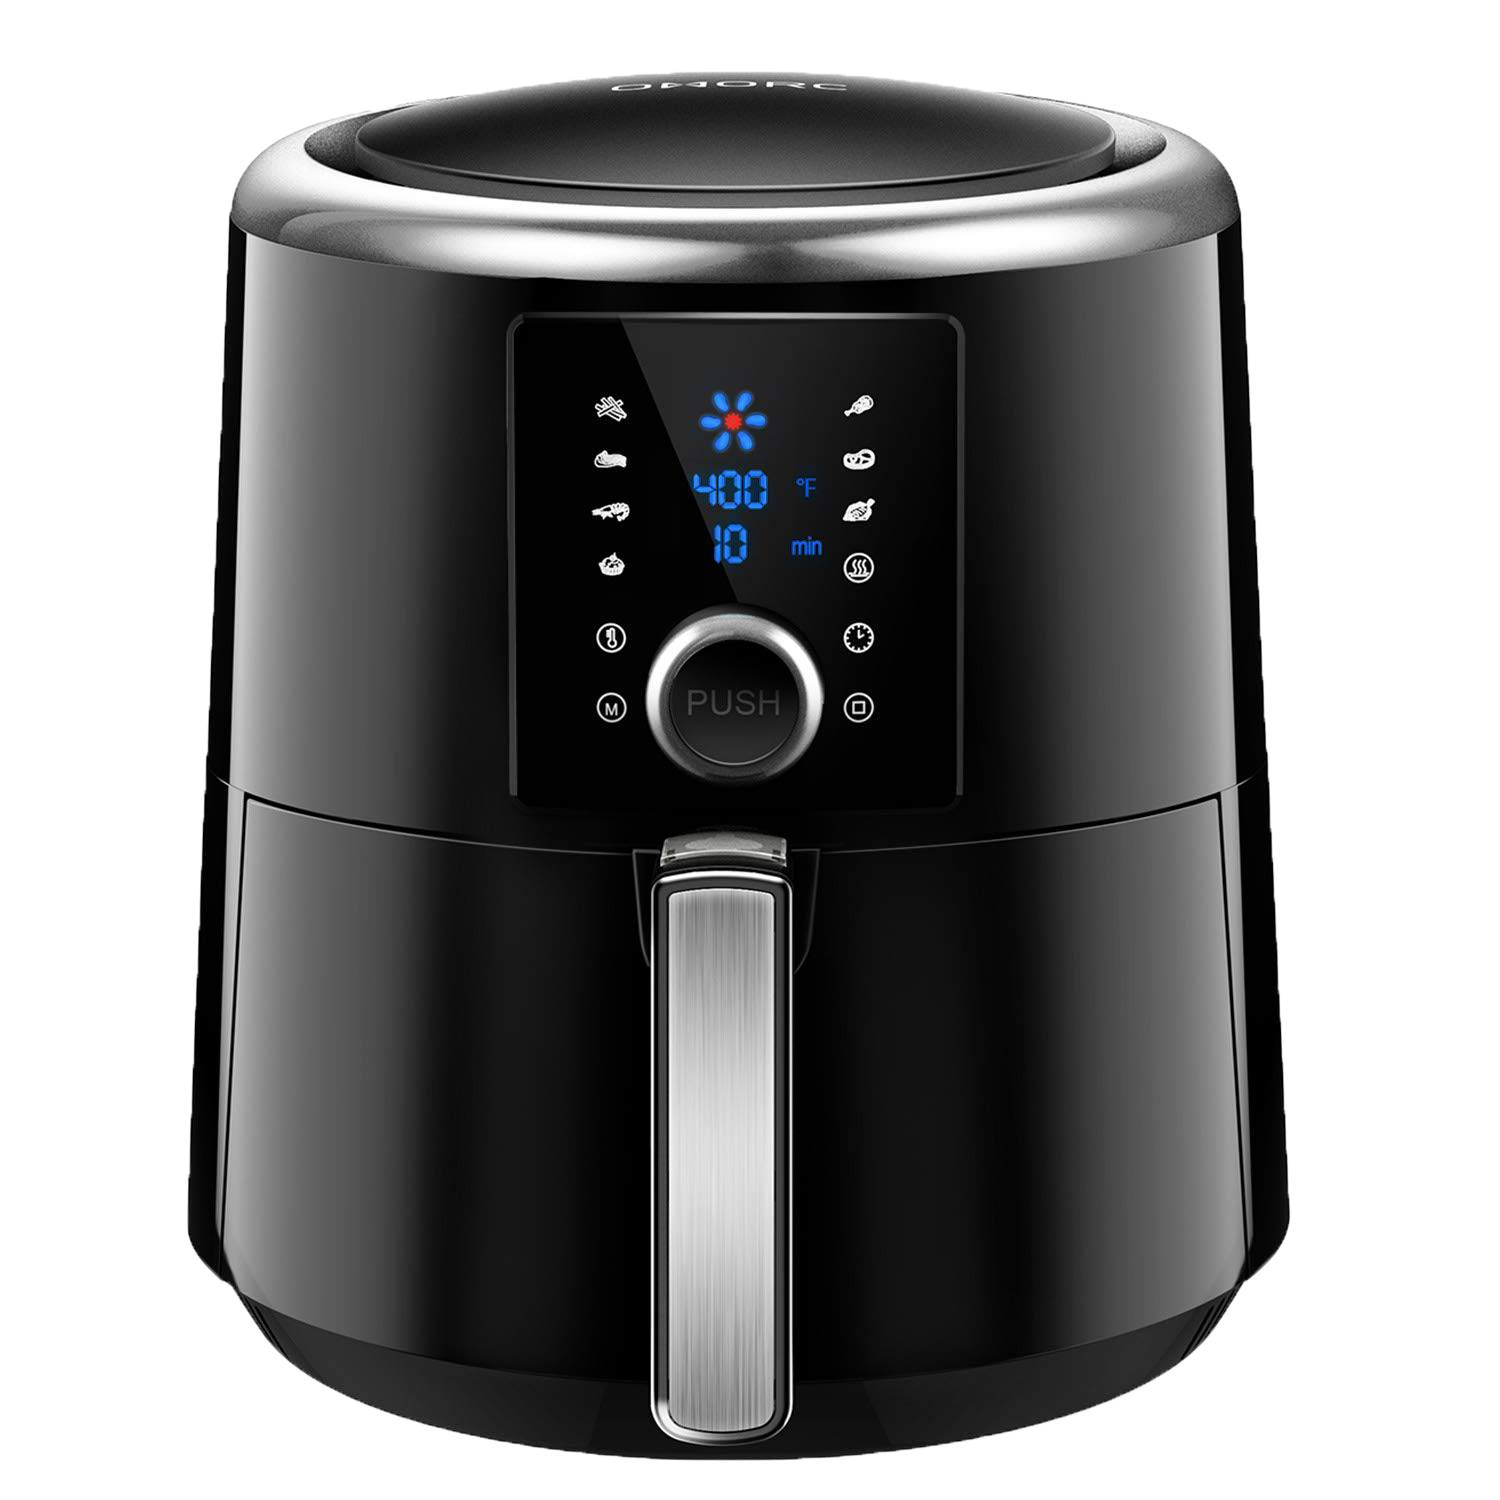 Omorc Air Fryer XL